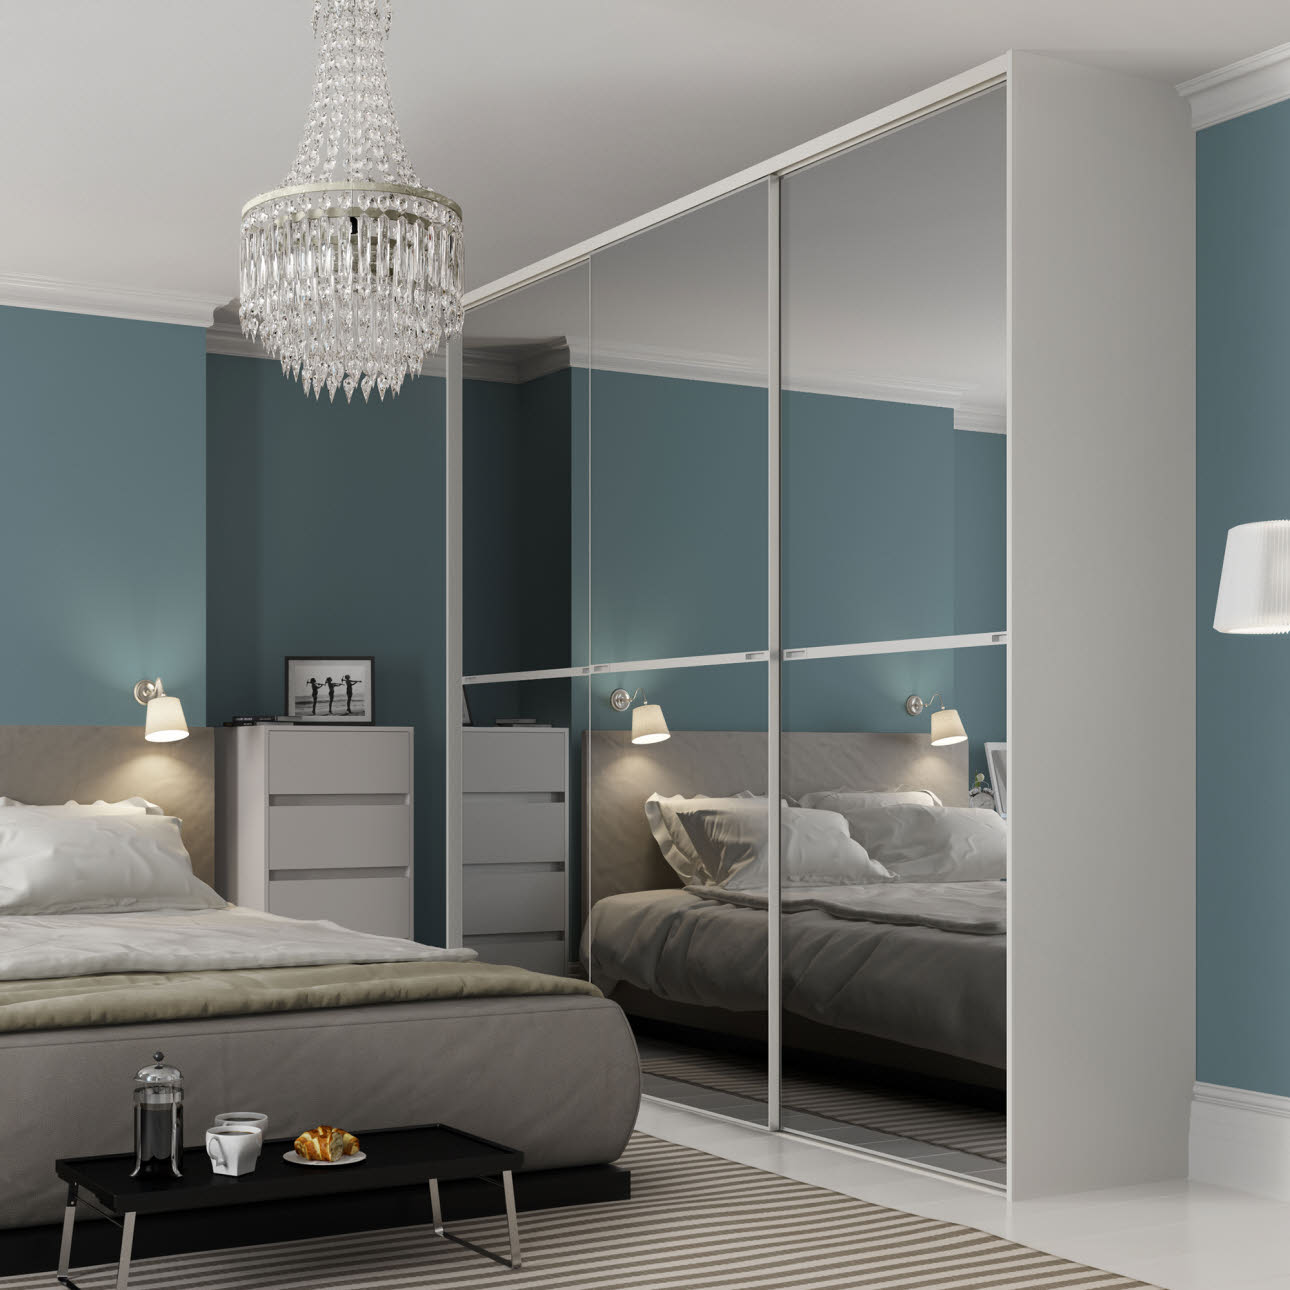 Sliding Doors Of Bedroom: Internal Sliding Doors